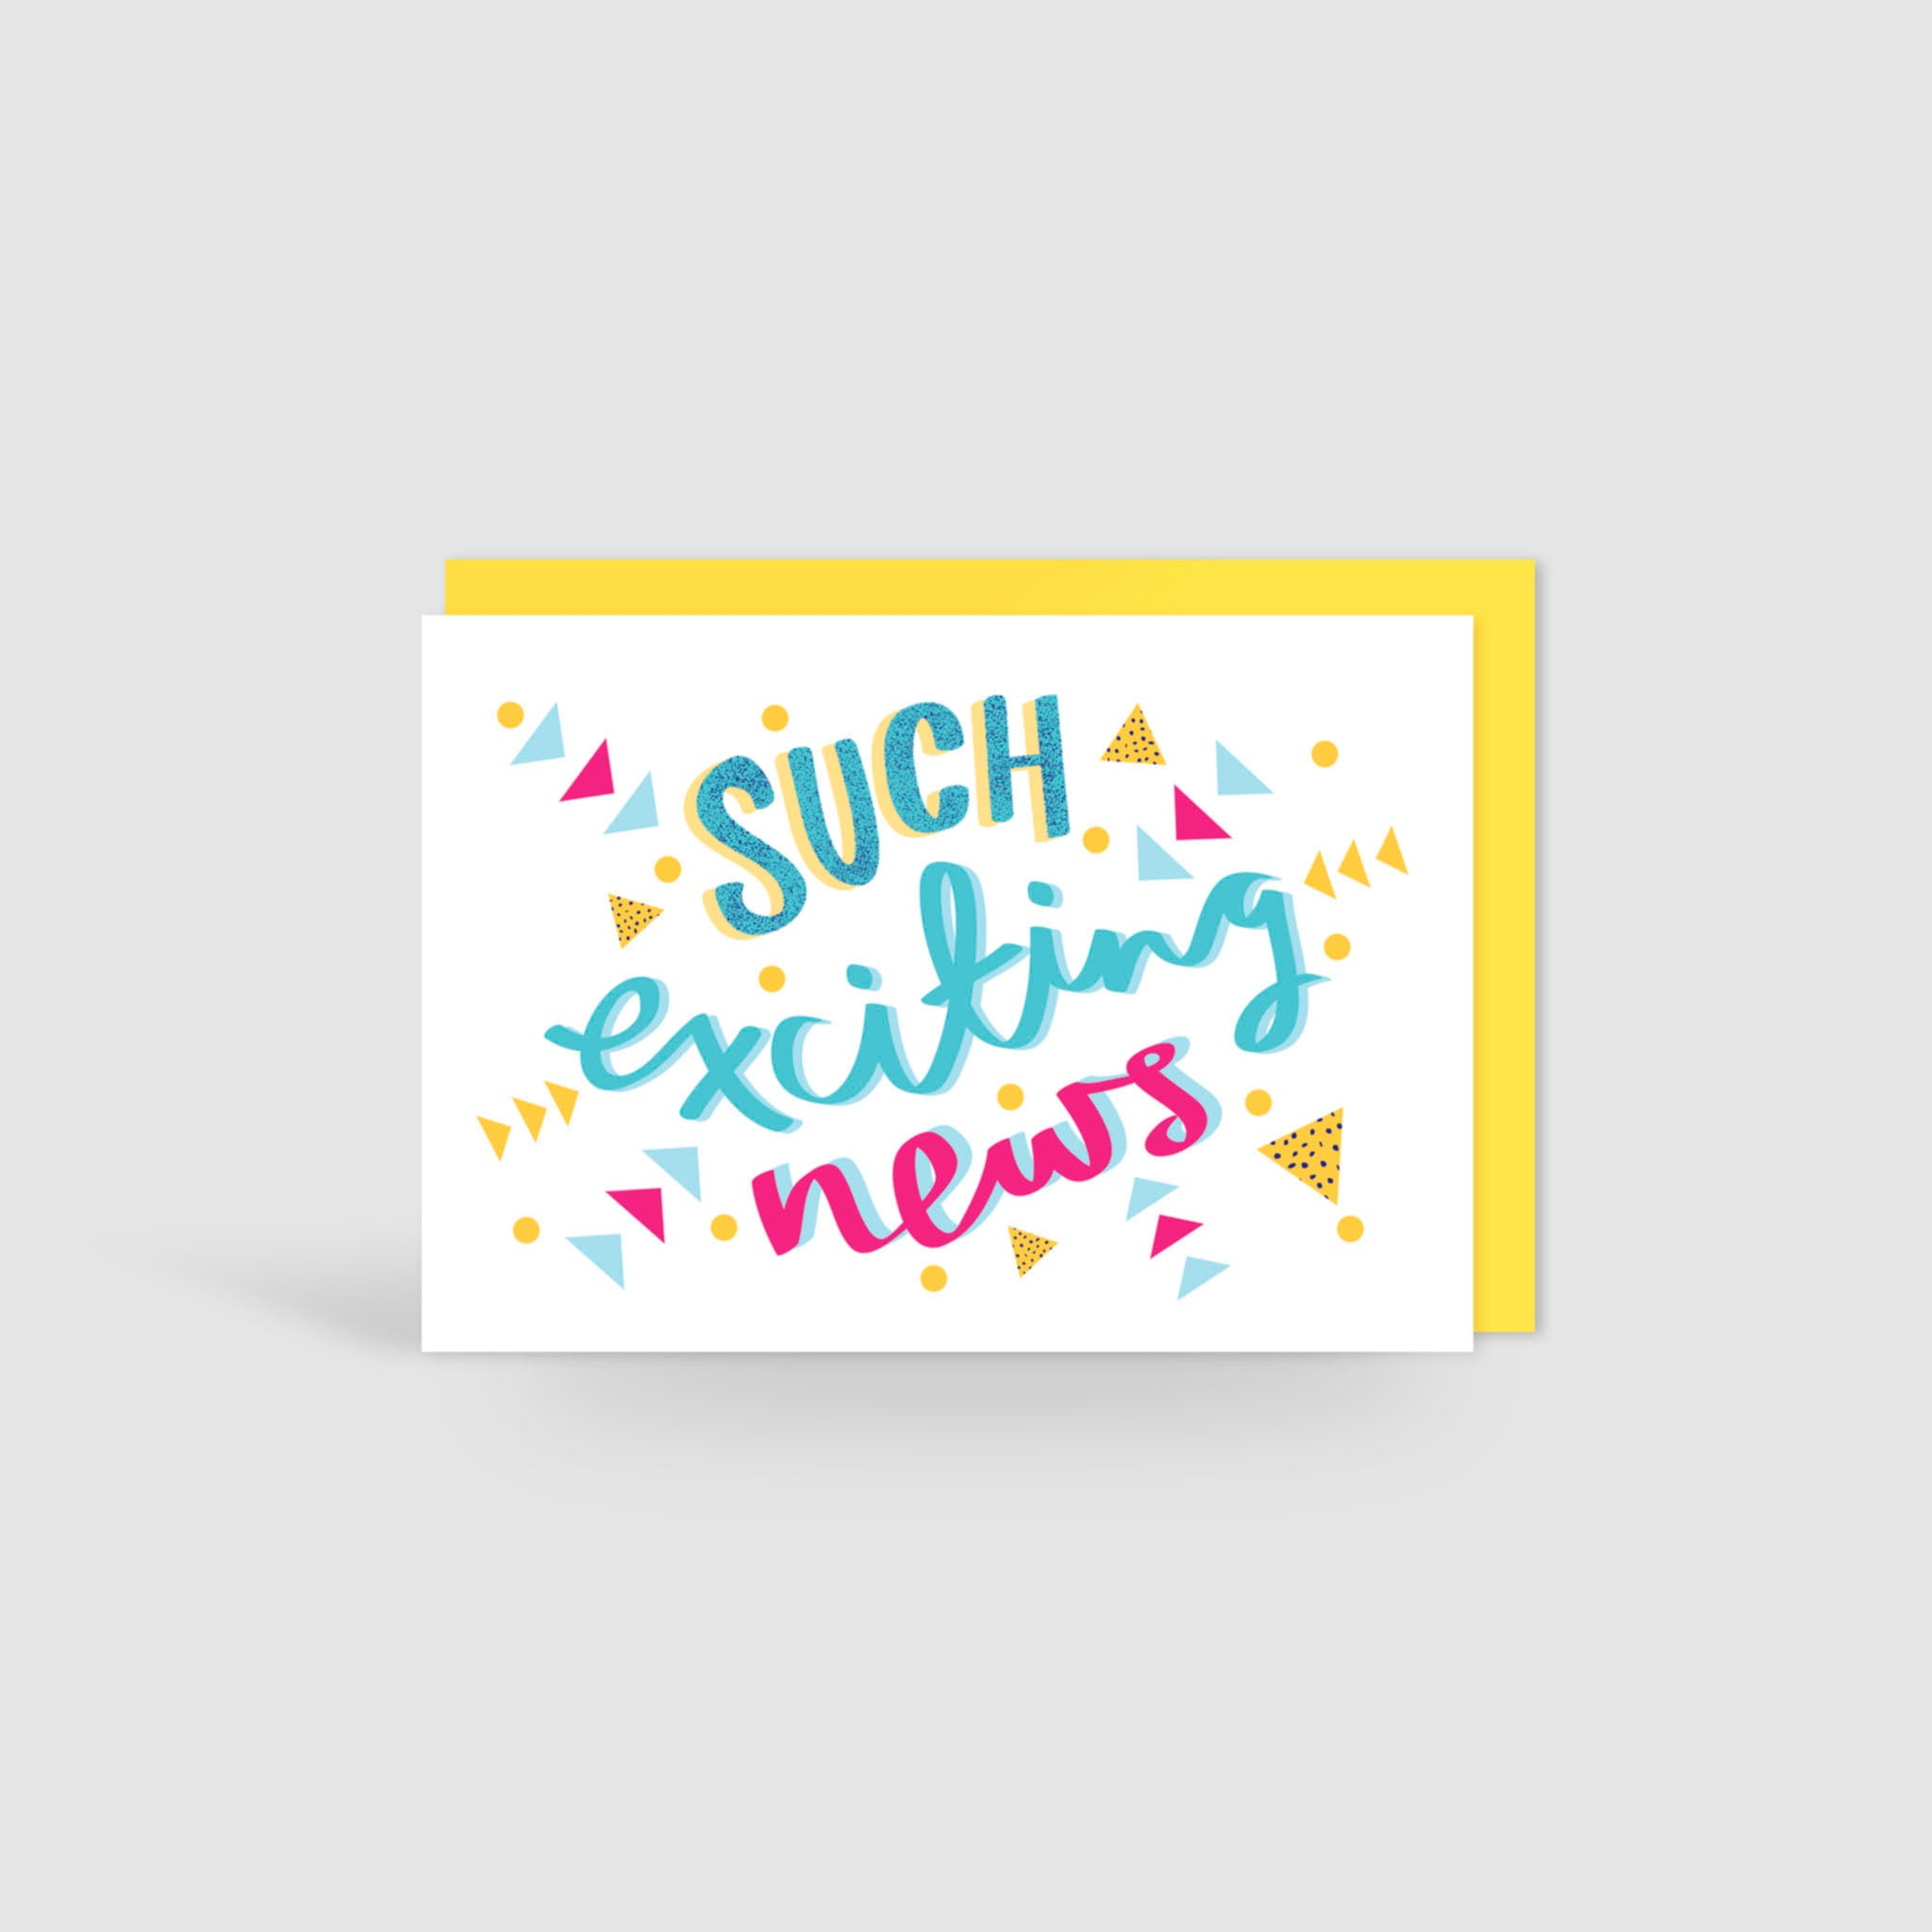 Such Exciting News! Card